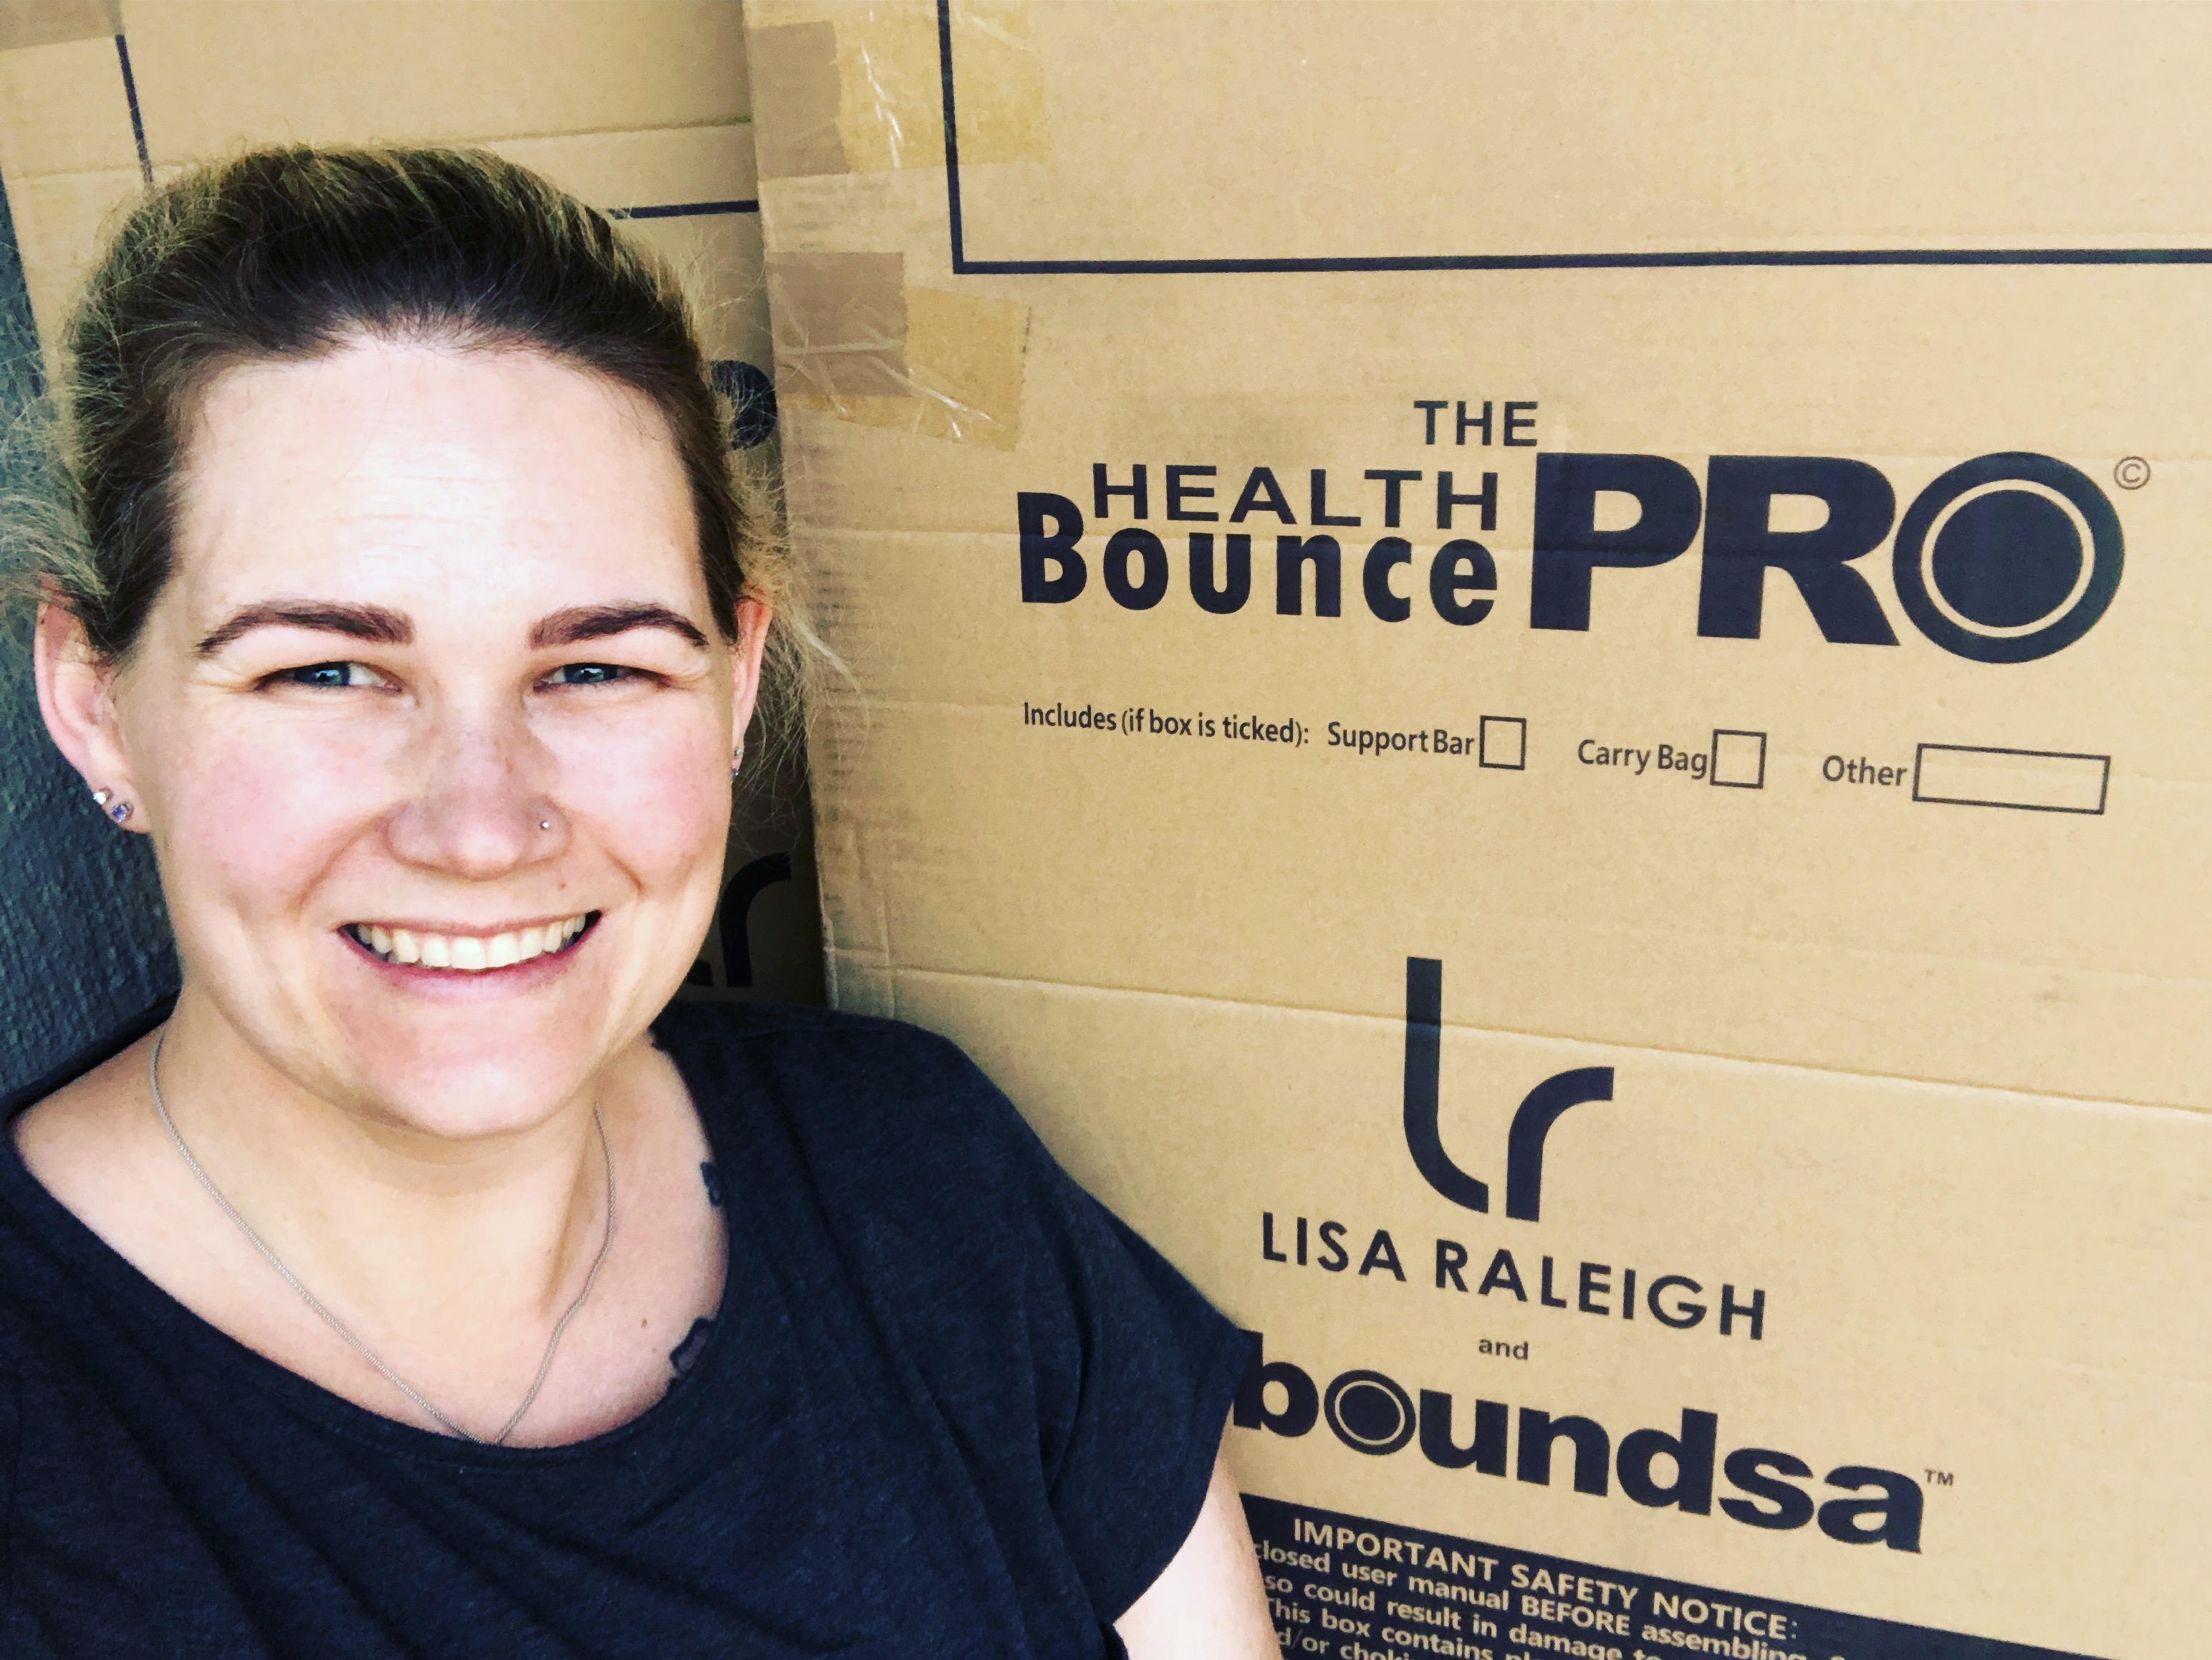 The arrival of my Lisa Raleigh Rebounder